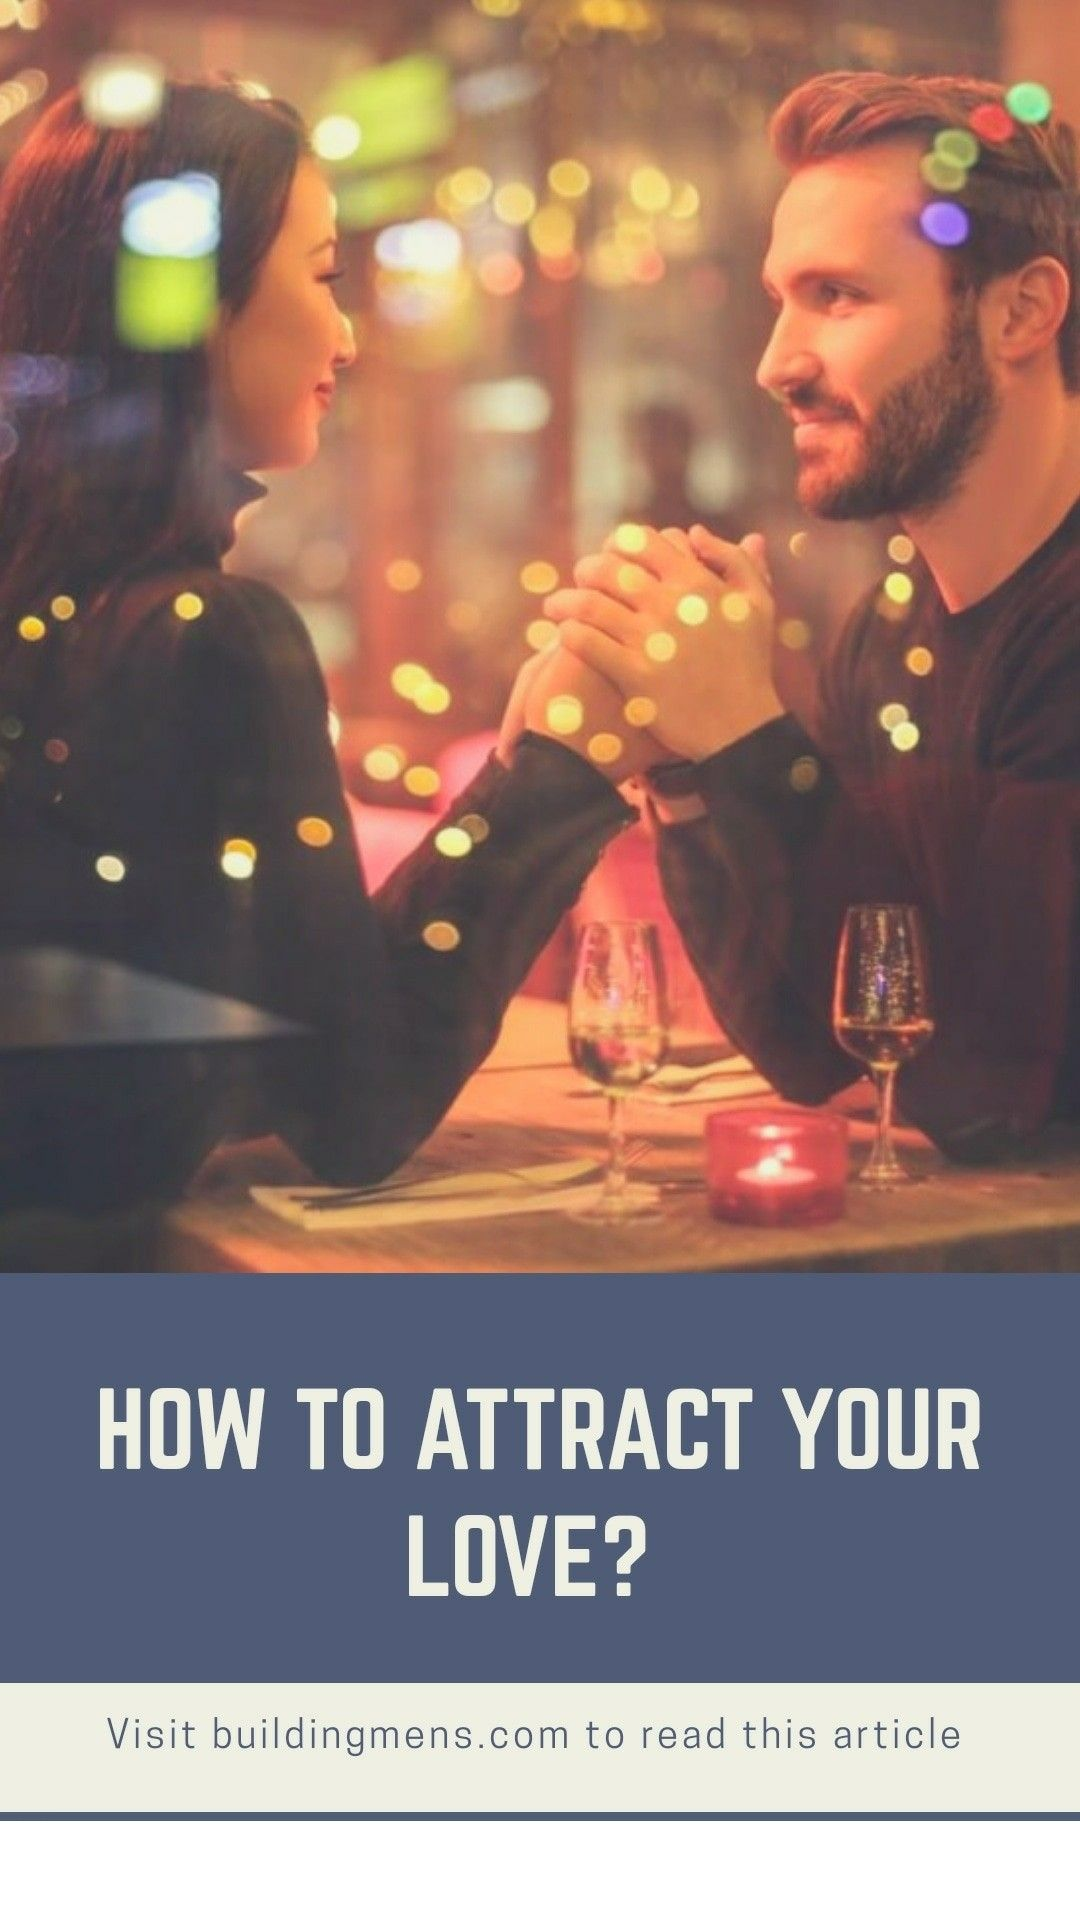 How to attract someone you love? 4 alpha male mantras | Fashion